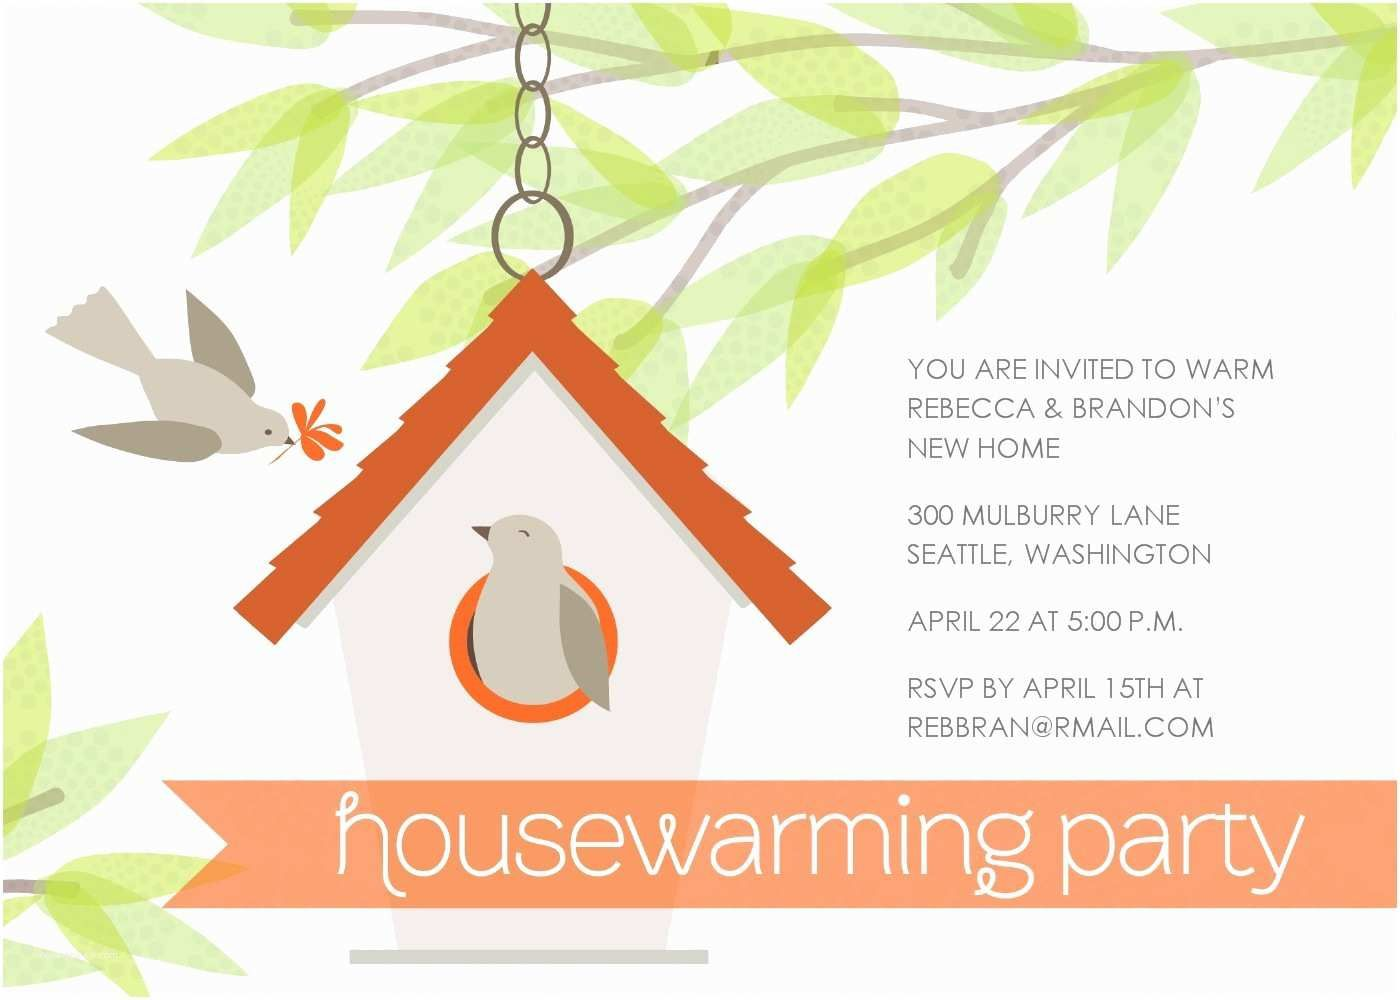 009 Dreaded Housewarming Party Invite Template High Def  Templates Invitation Maker EditableFull